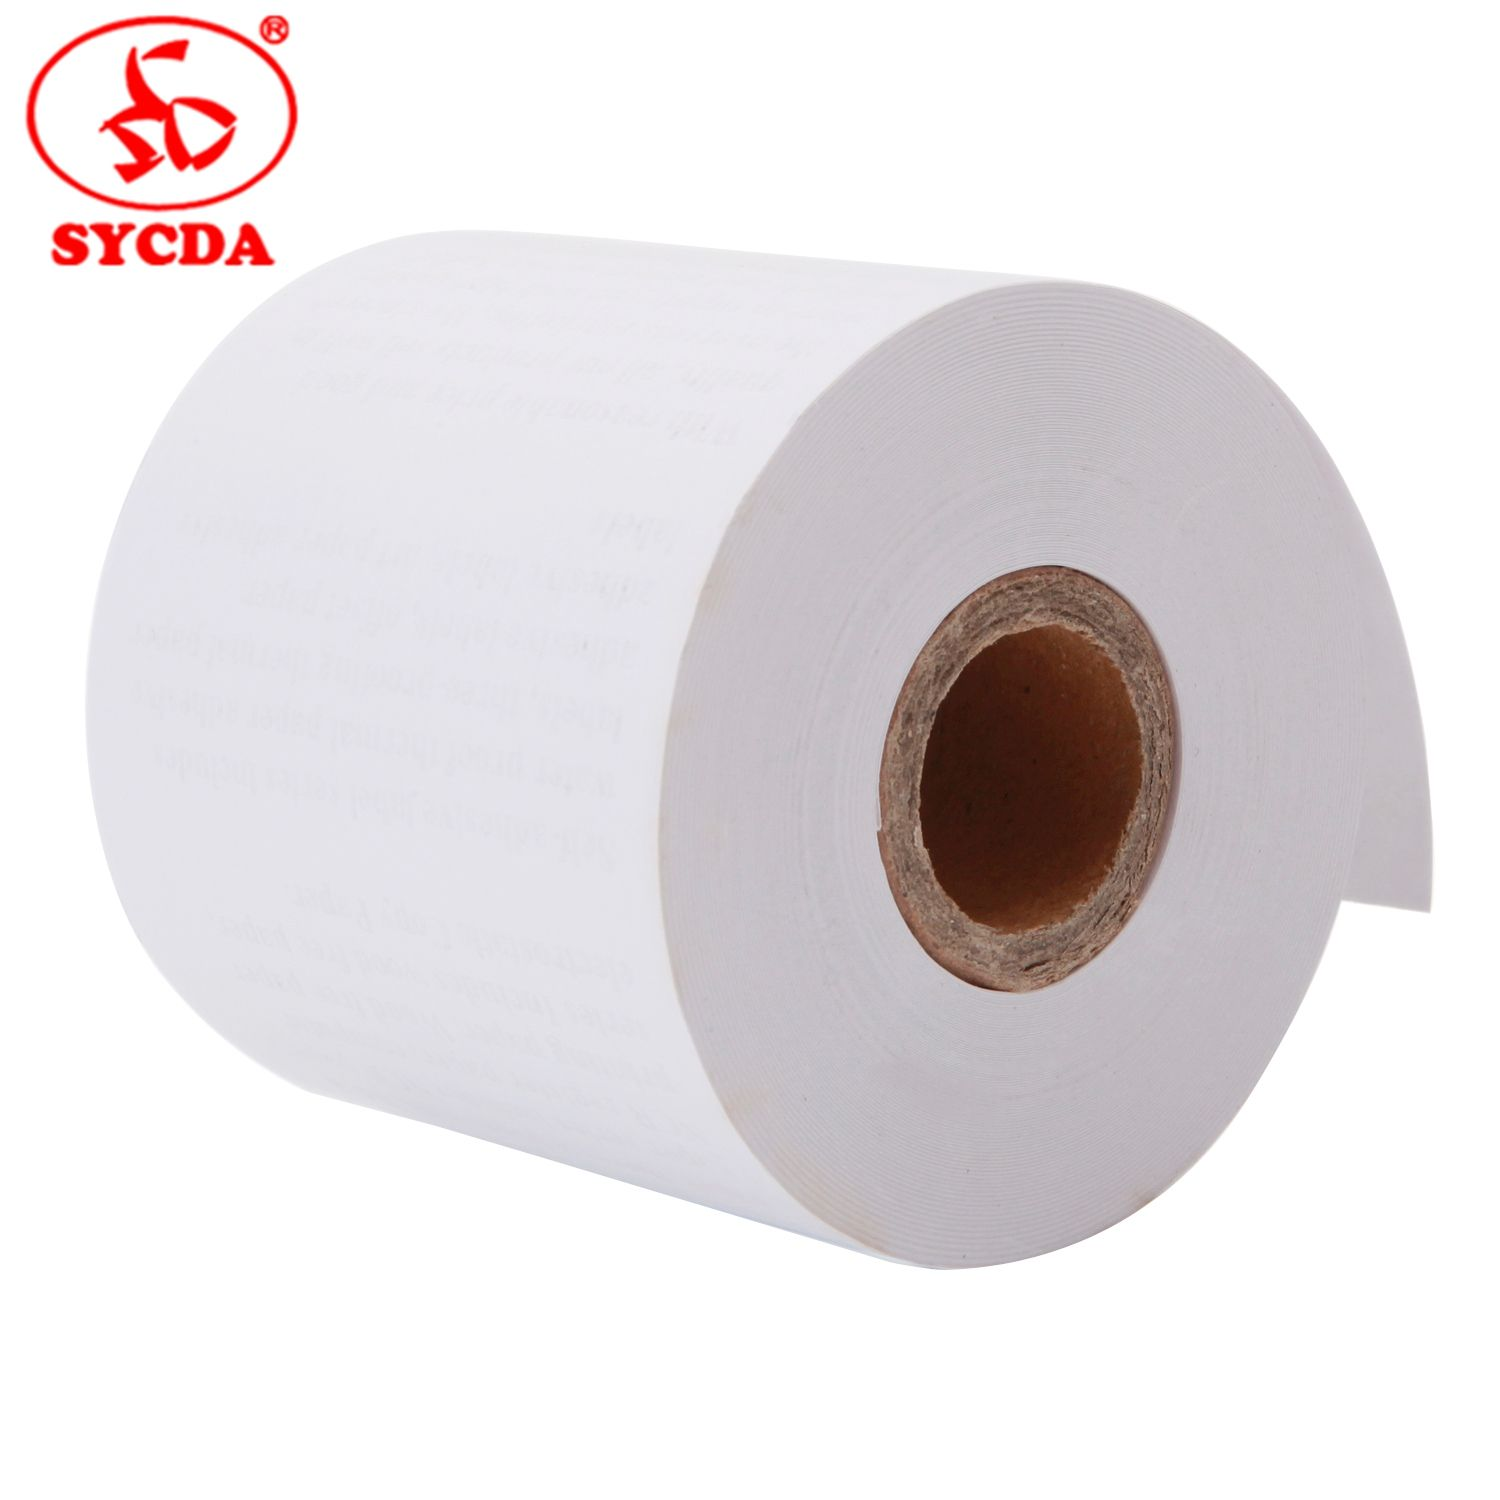 Good Price Thermal Paper Rolls Cash Register Paper Rolls for Credit Card Machine POS